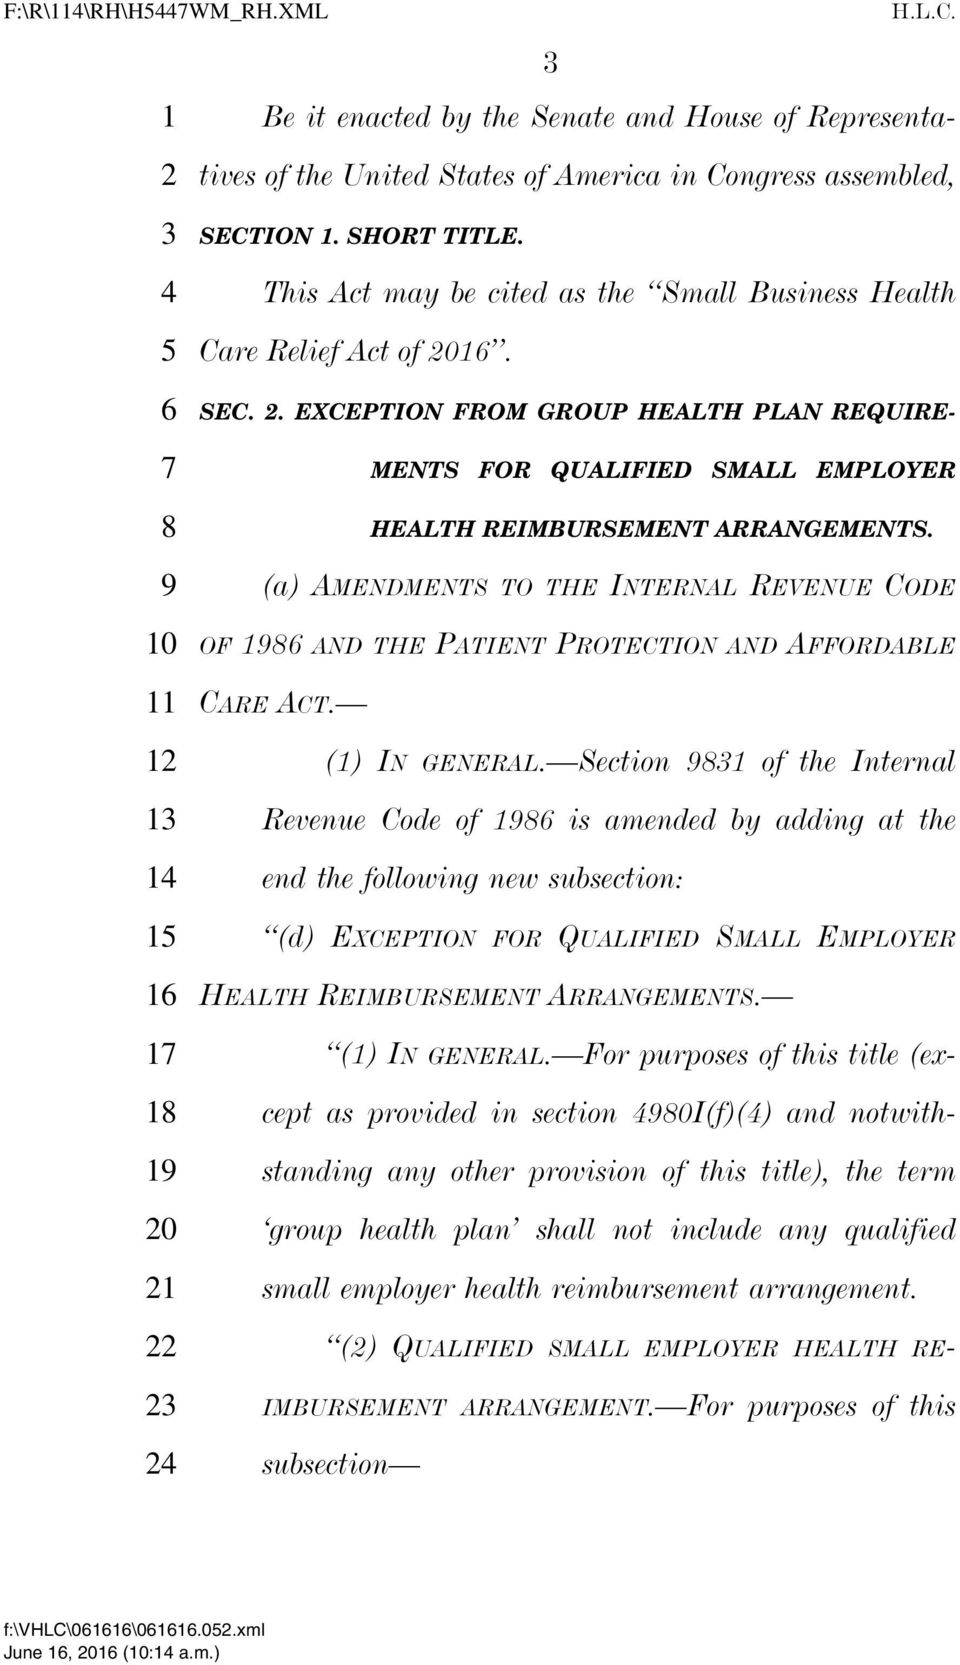 (a) AMENDMENTS TO THE INTERNAL REVENUE CODE OF AND THE PATIENT PROTECTION AND AFFORDABLE CARE ACT. (1) IN GENERAL.